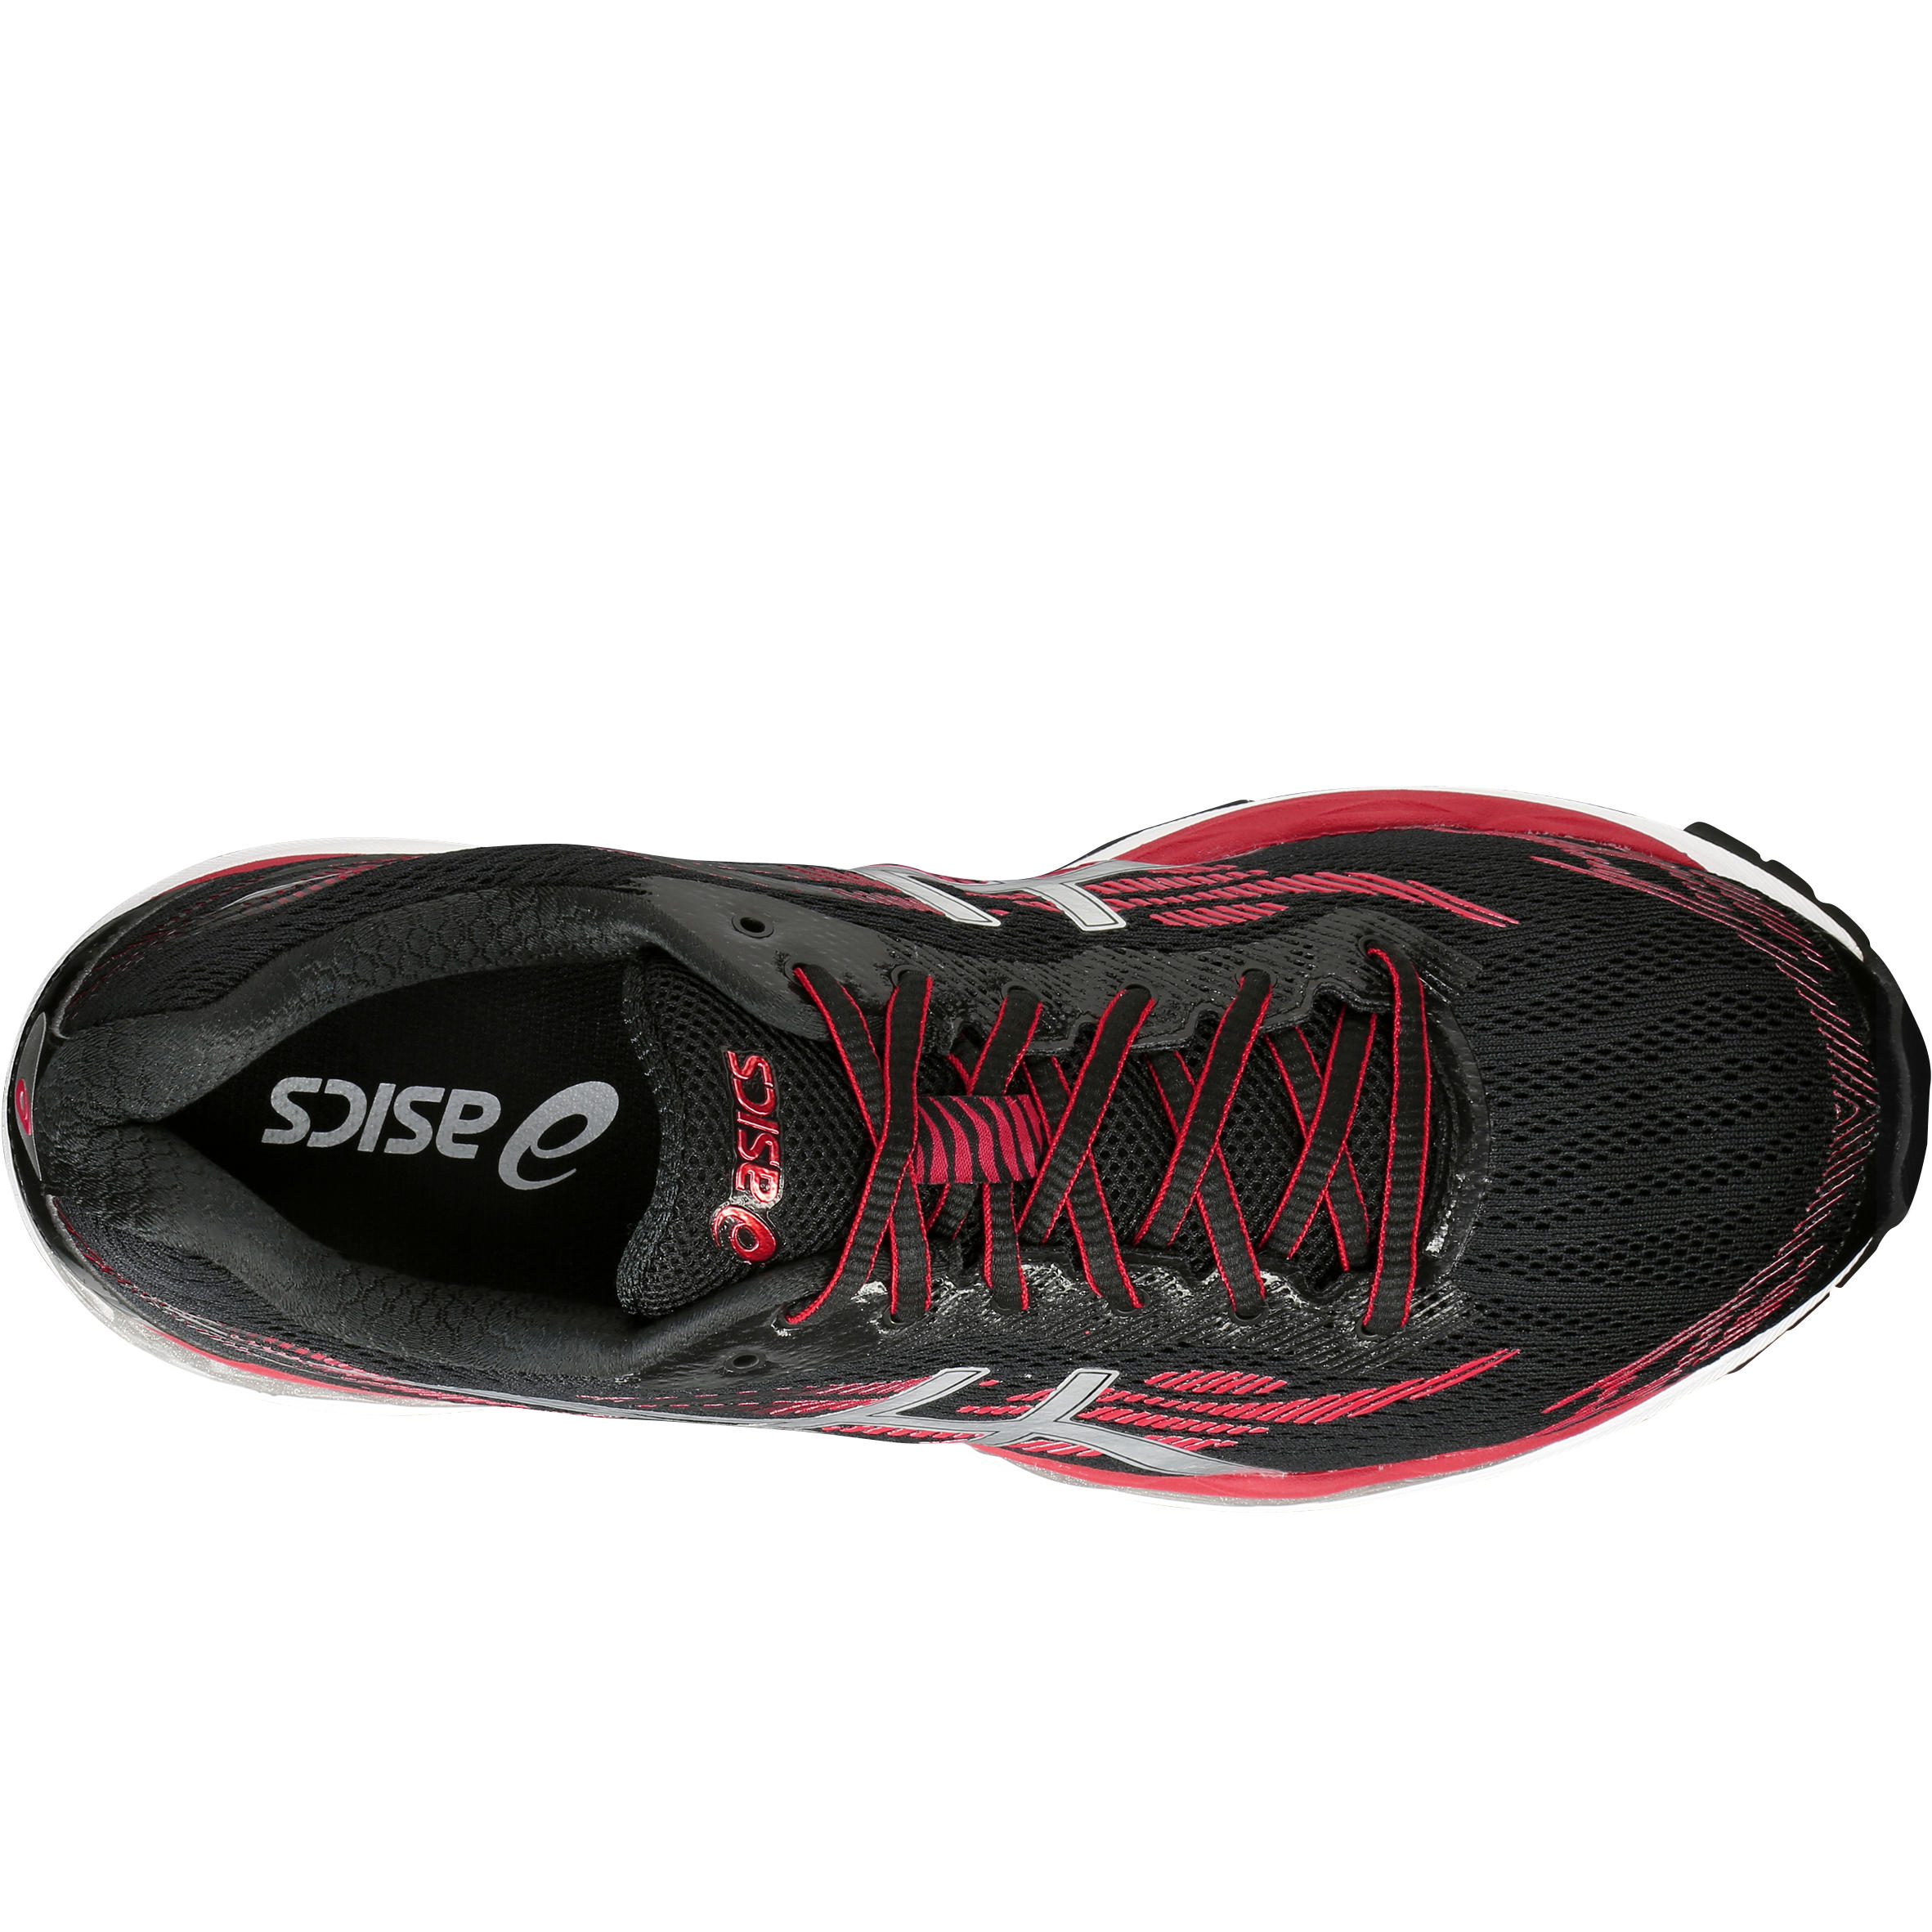 official photos b9dde 460d7 Rouge Noir Ziruss Chaussure Gel Asics Homme De Running Decathlon wXxX0qYT